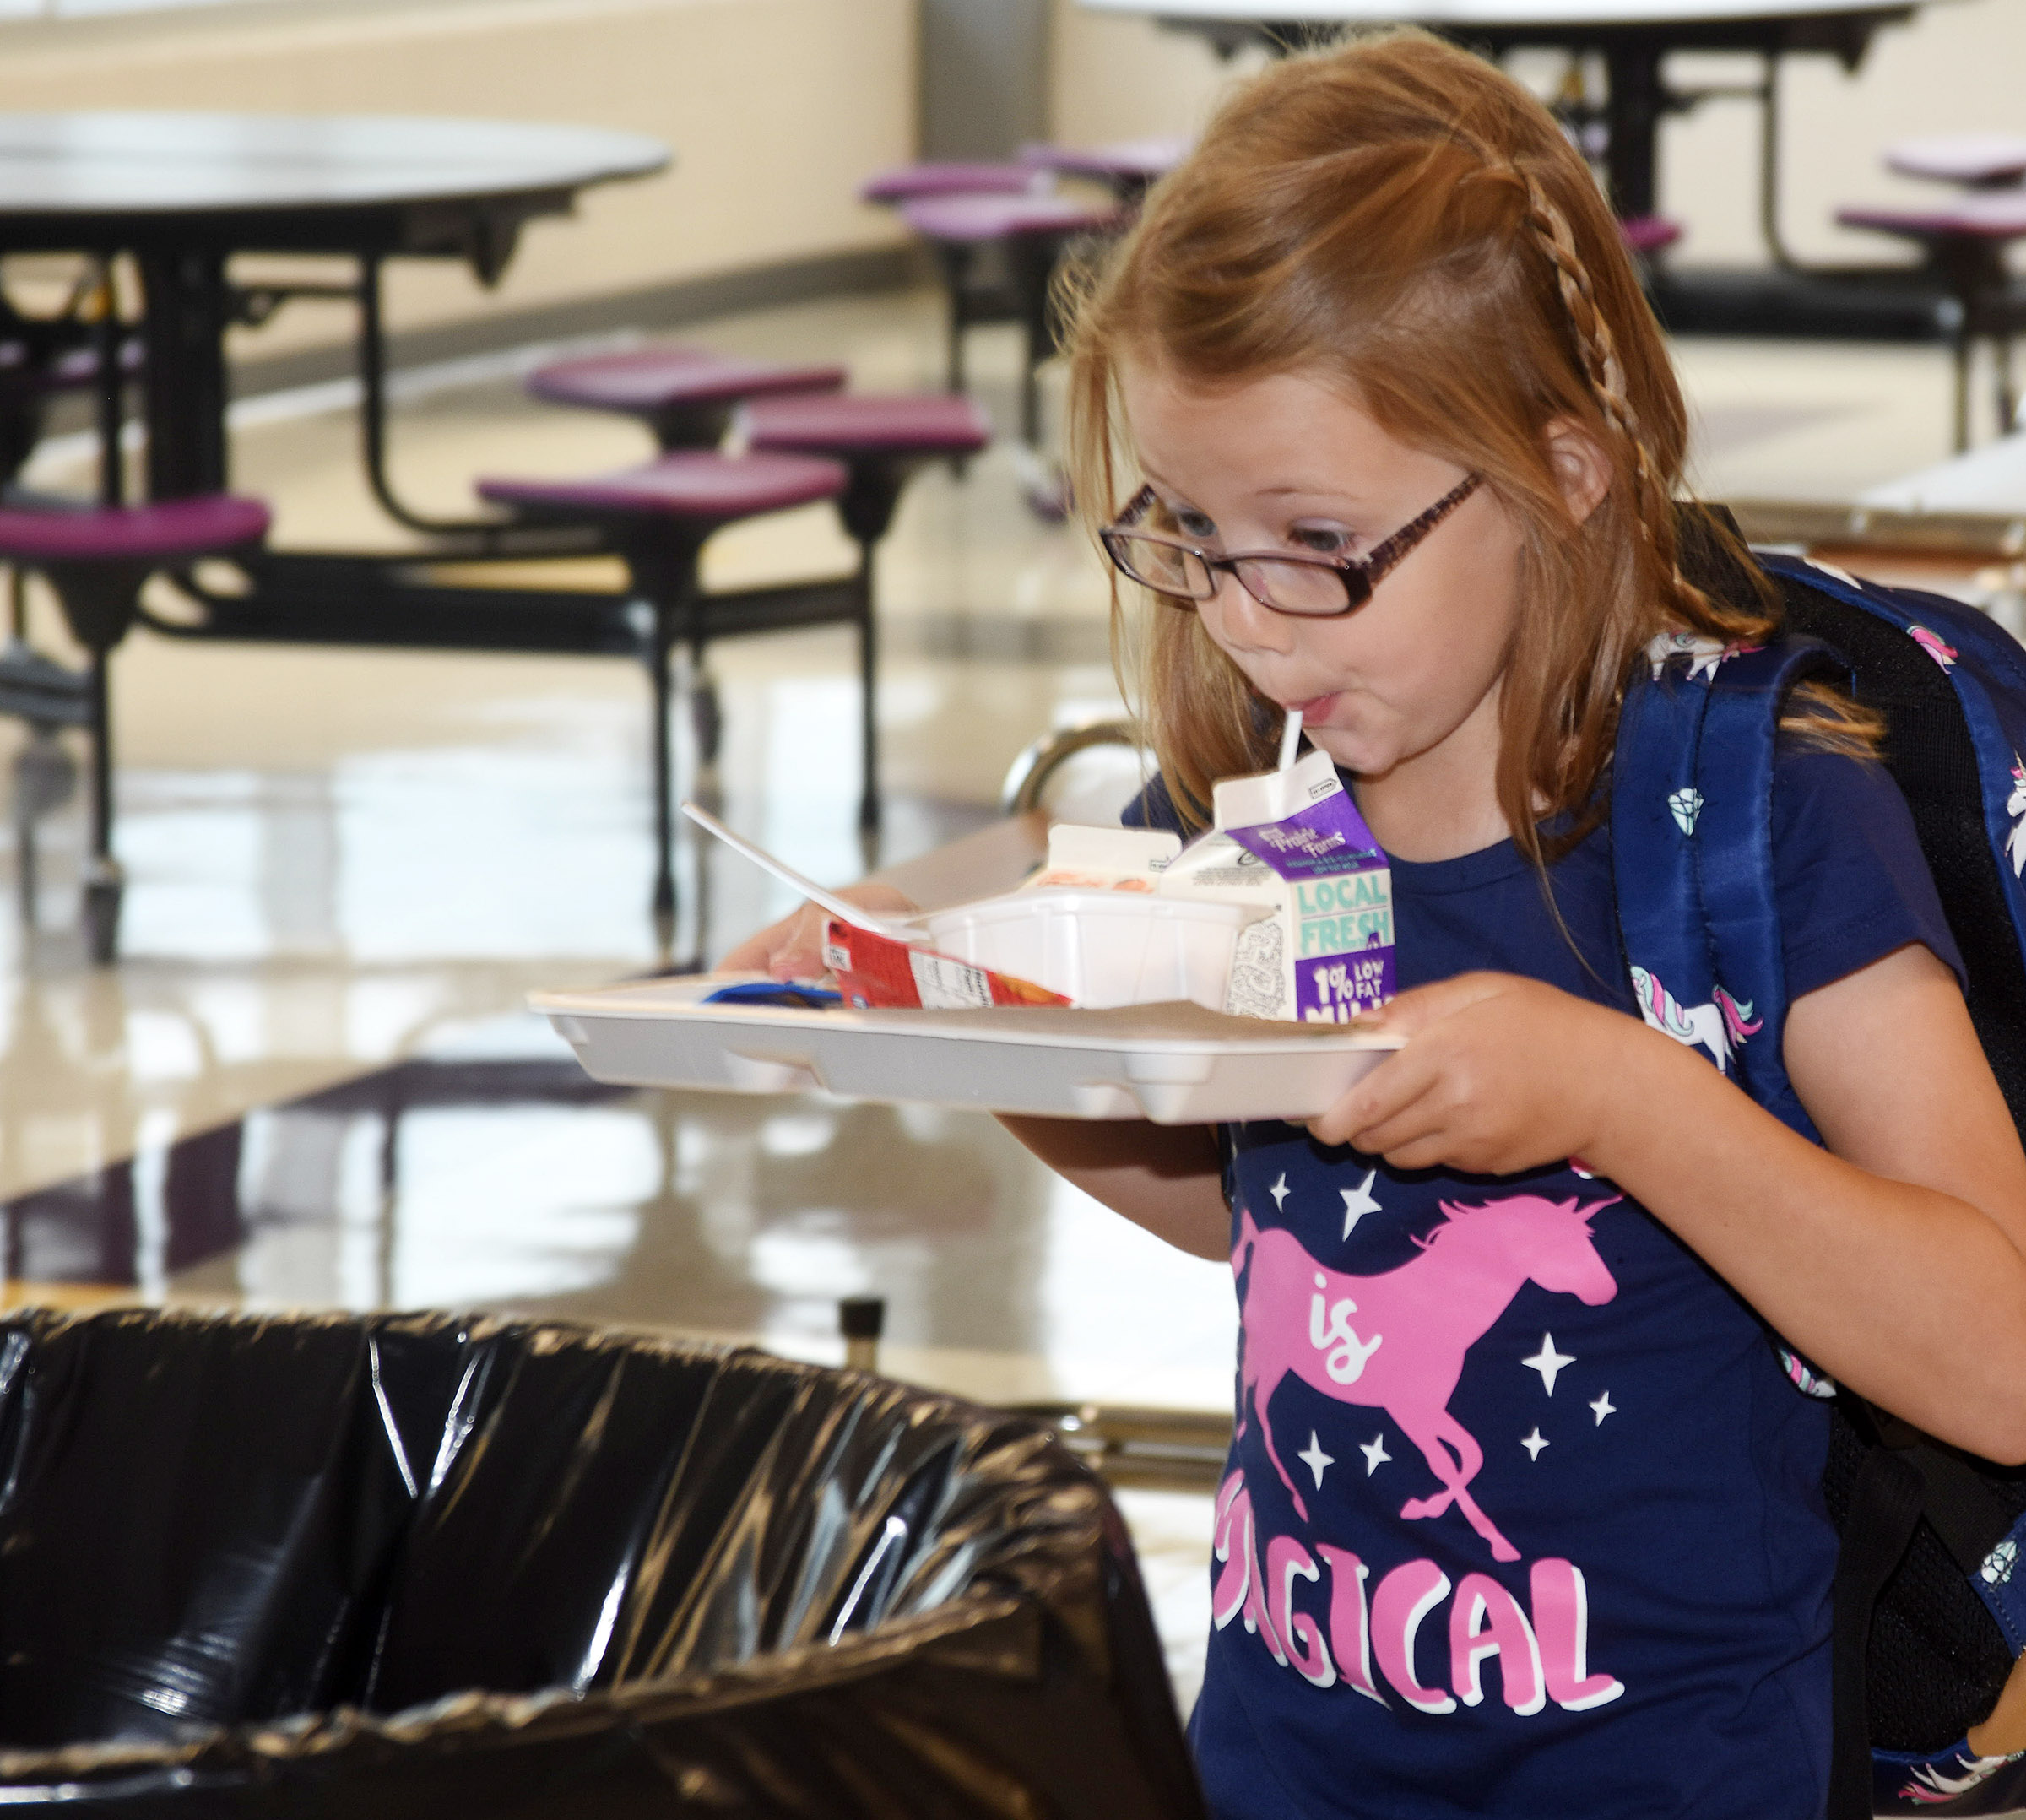 Campbellsville Elementary School first-grader Emmaline Vespie takes a final sip of milk before going to class.